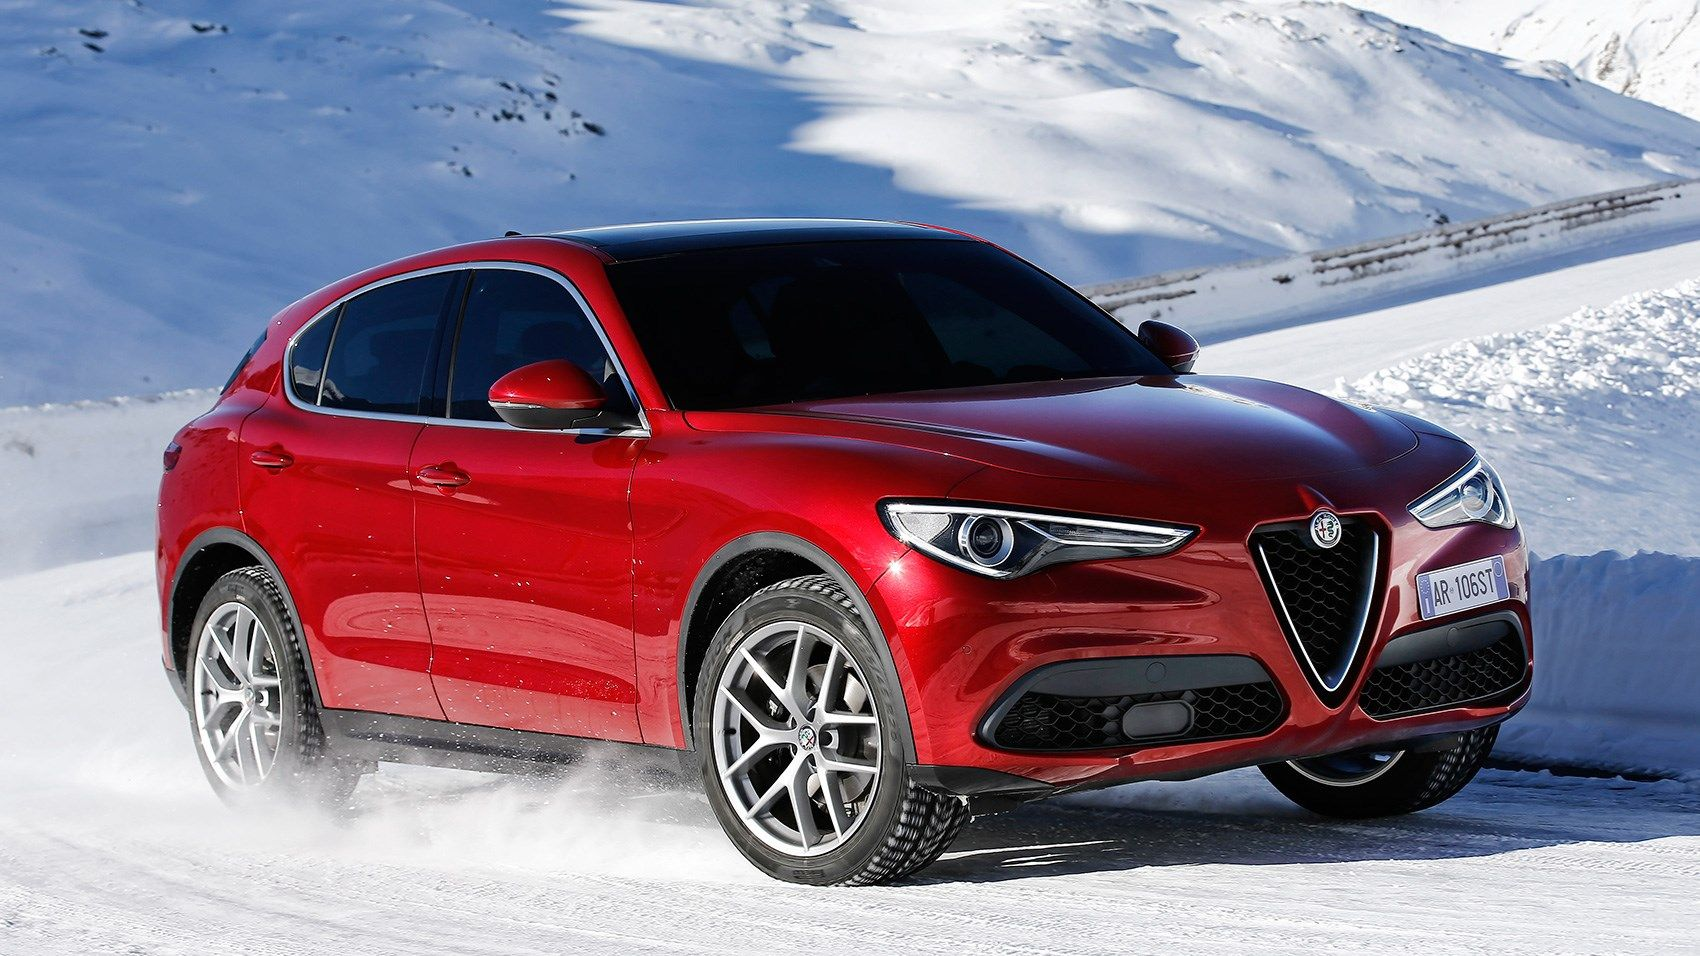 2018 Alfa Romeo Stelvio Concept Review Alfa Romeo Is Steadily Reconstructing Its Presence In This Article In The United States Right After A Hiatus First Em